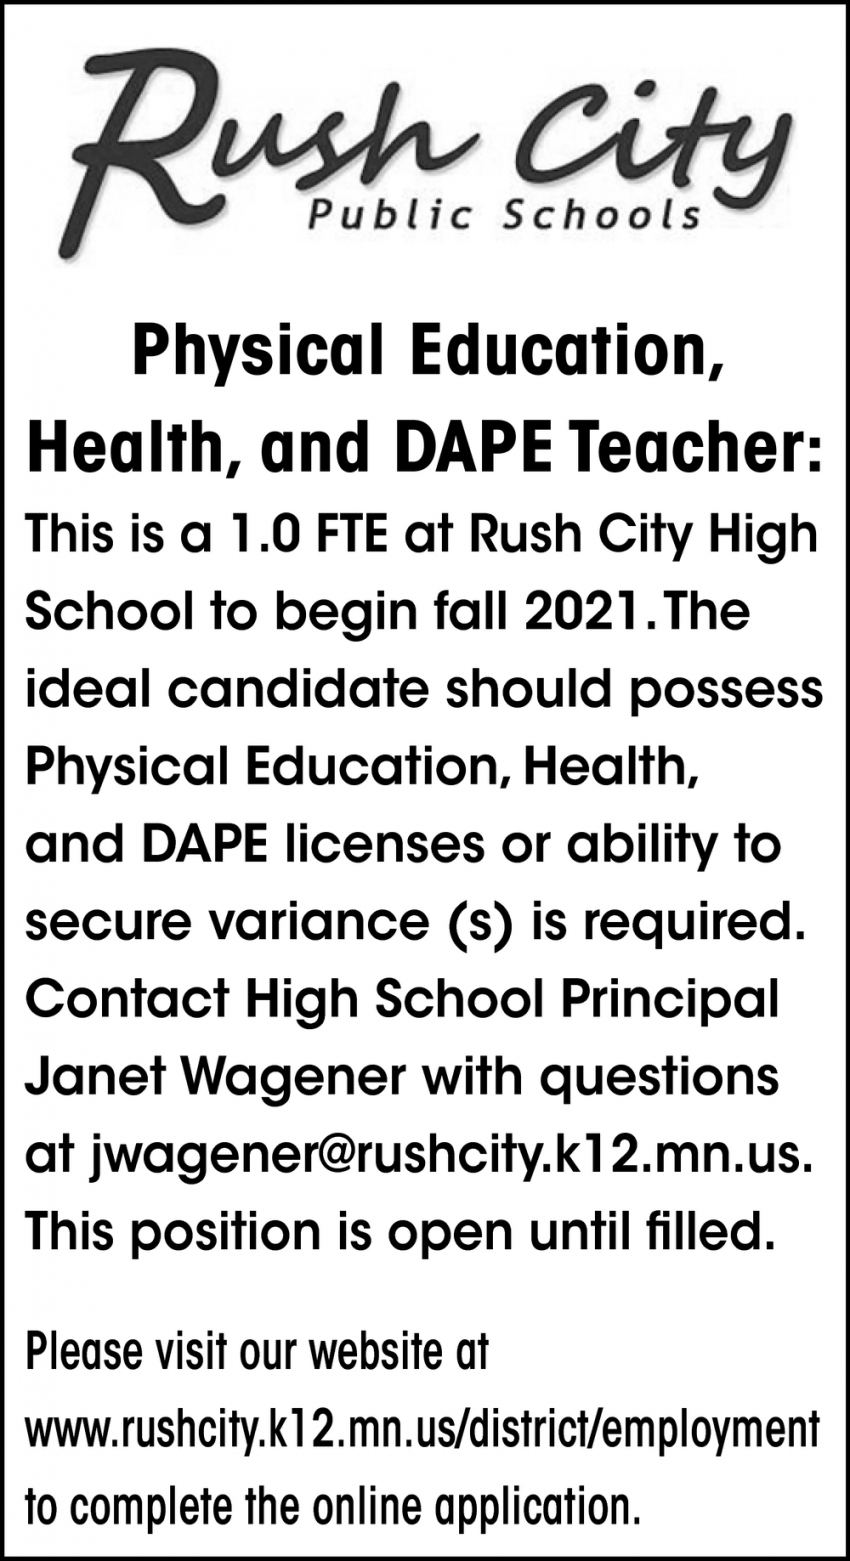 Physical Education, Health, and DAPE Teacher